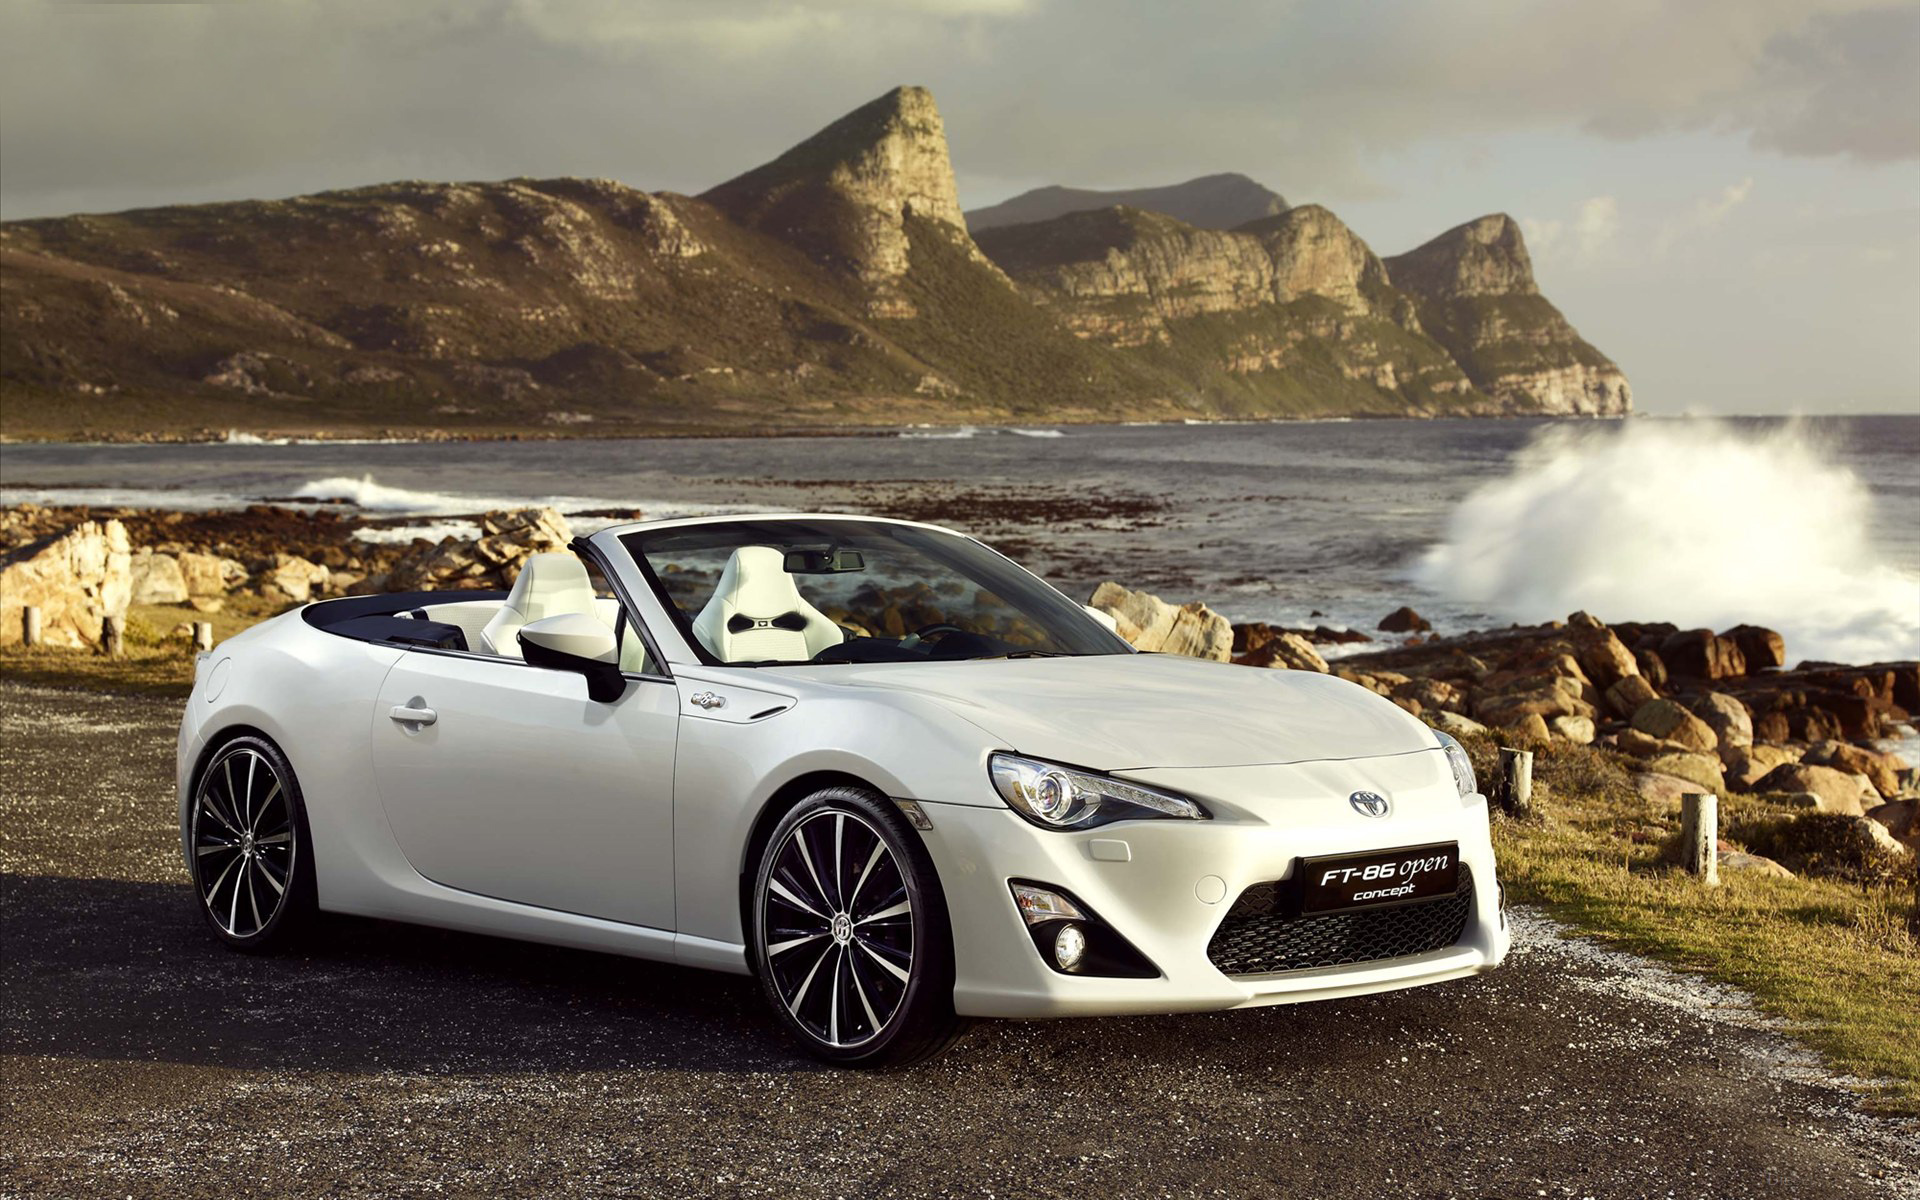 Toyota ft 86 open concept 2013 wallpaper hd car wallpapers - 2013 Toyota Ft 86 Open Concept